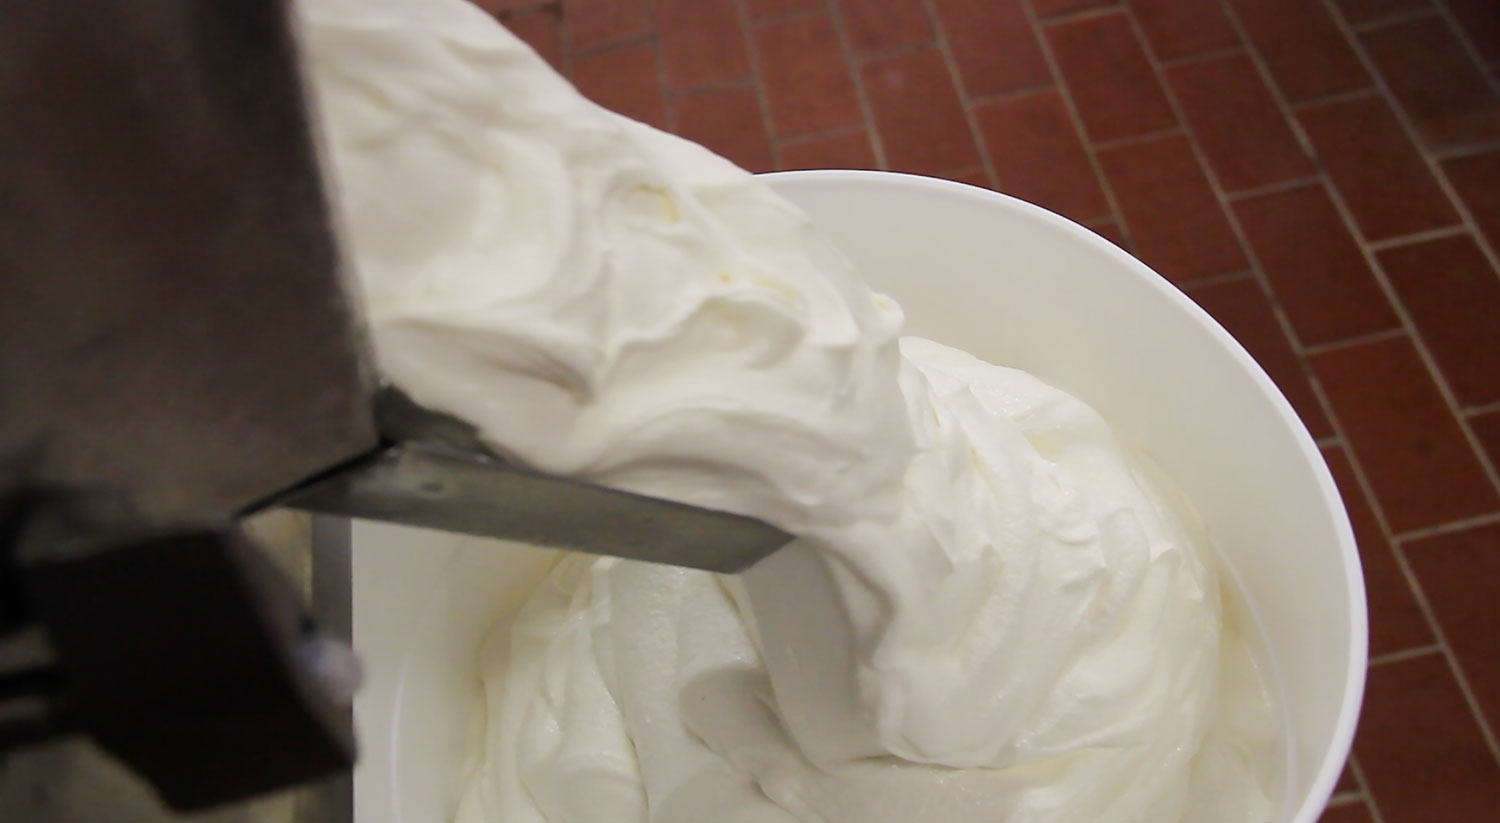 Ice cream production machine spills out vanilla ice cream at Morrisville State College.